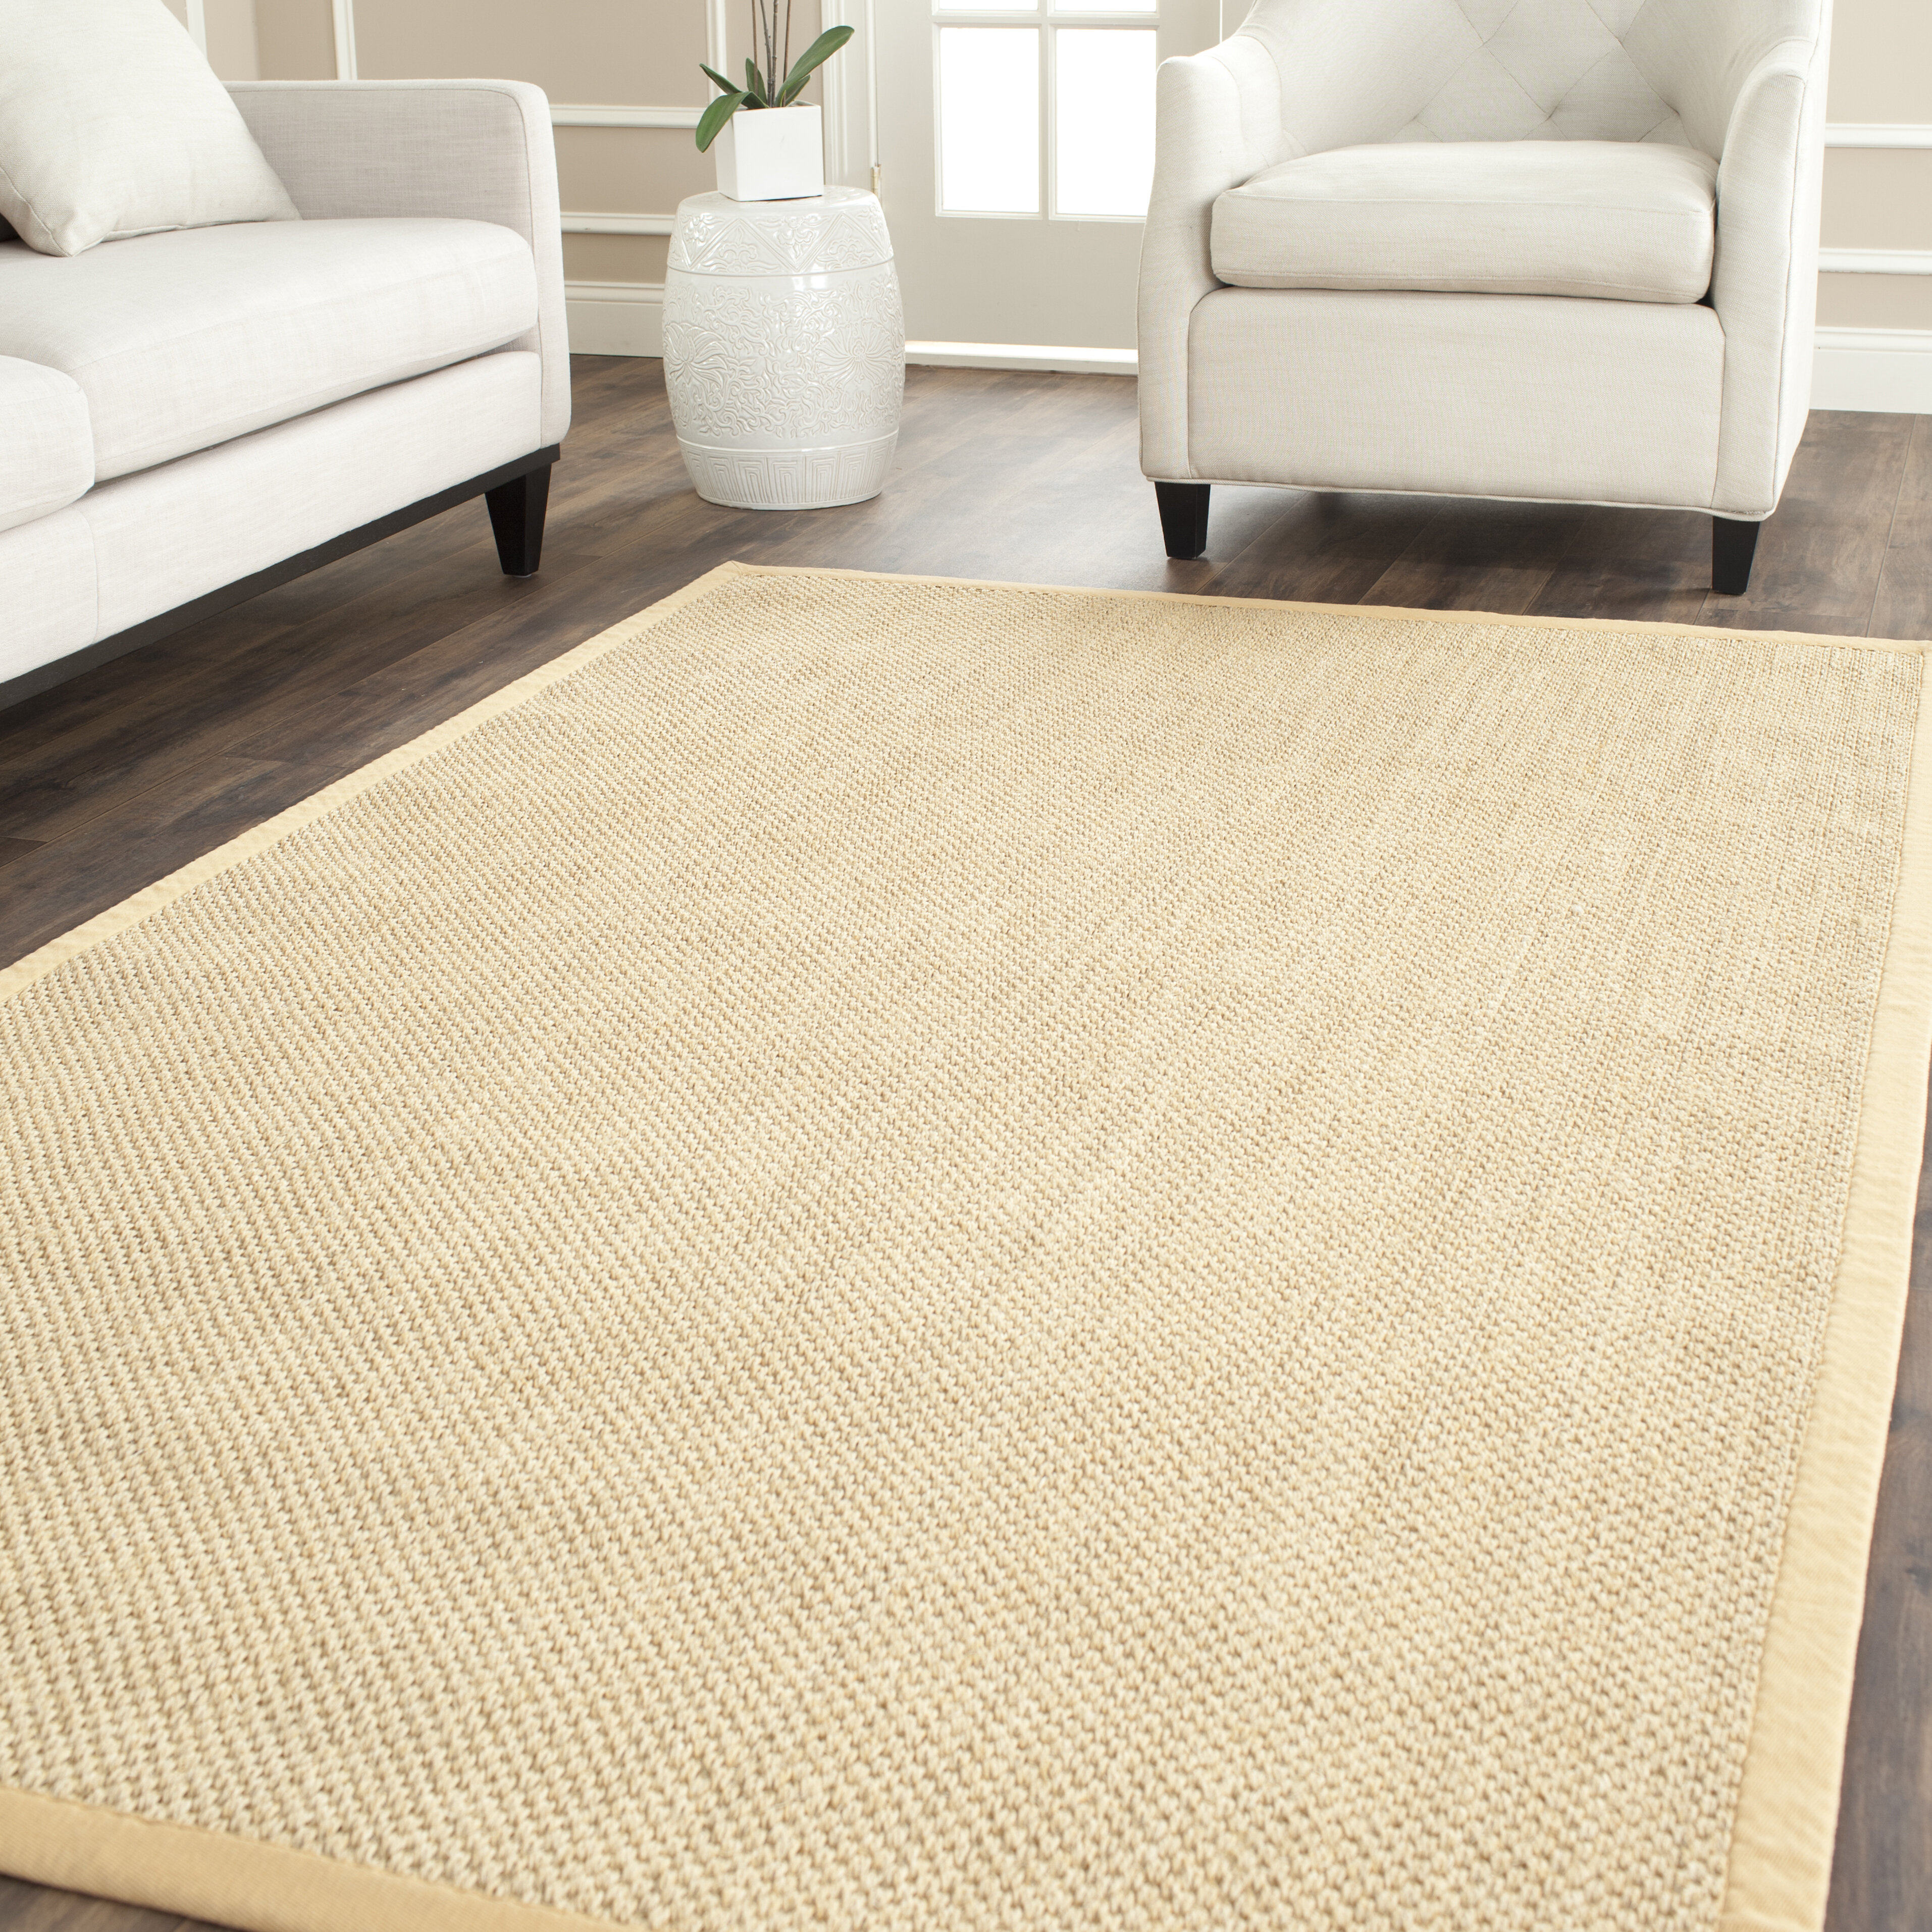 Andover Mills Jeremy Jute Sisal Maize Wheat Area Rug Reviews Wayfair